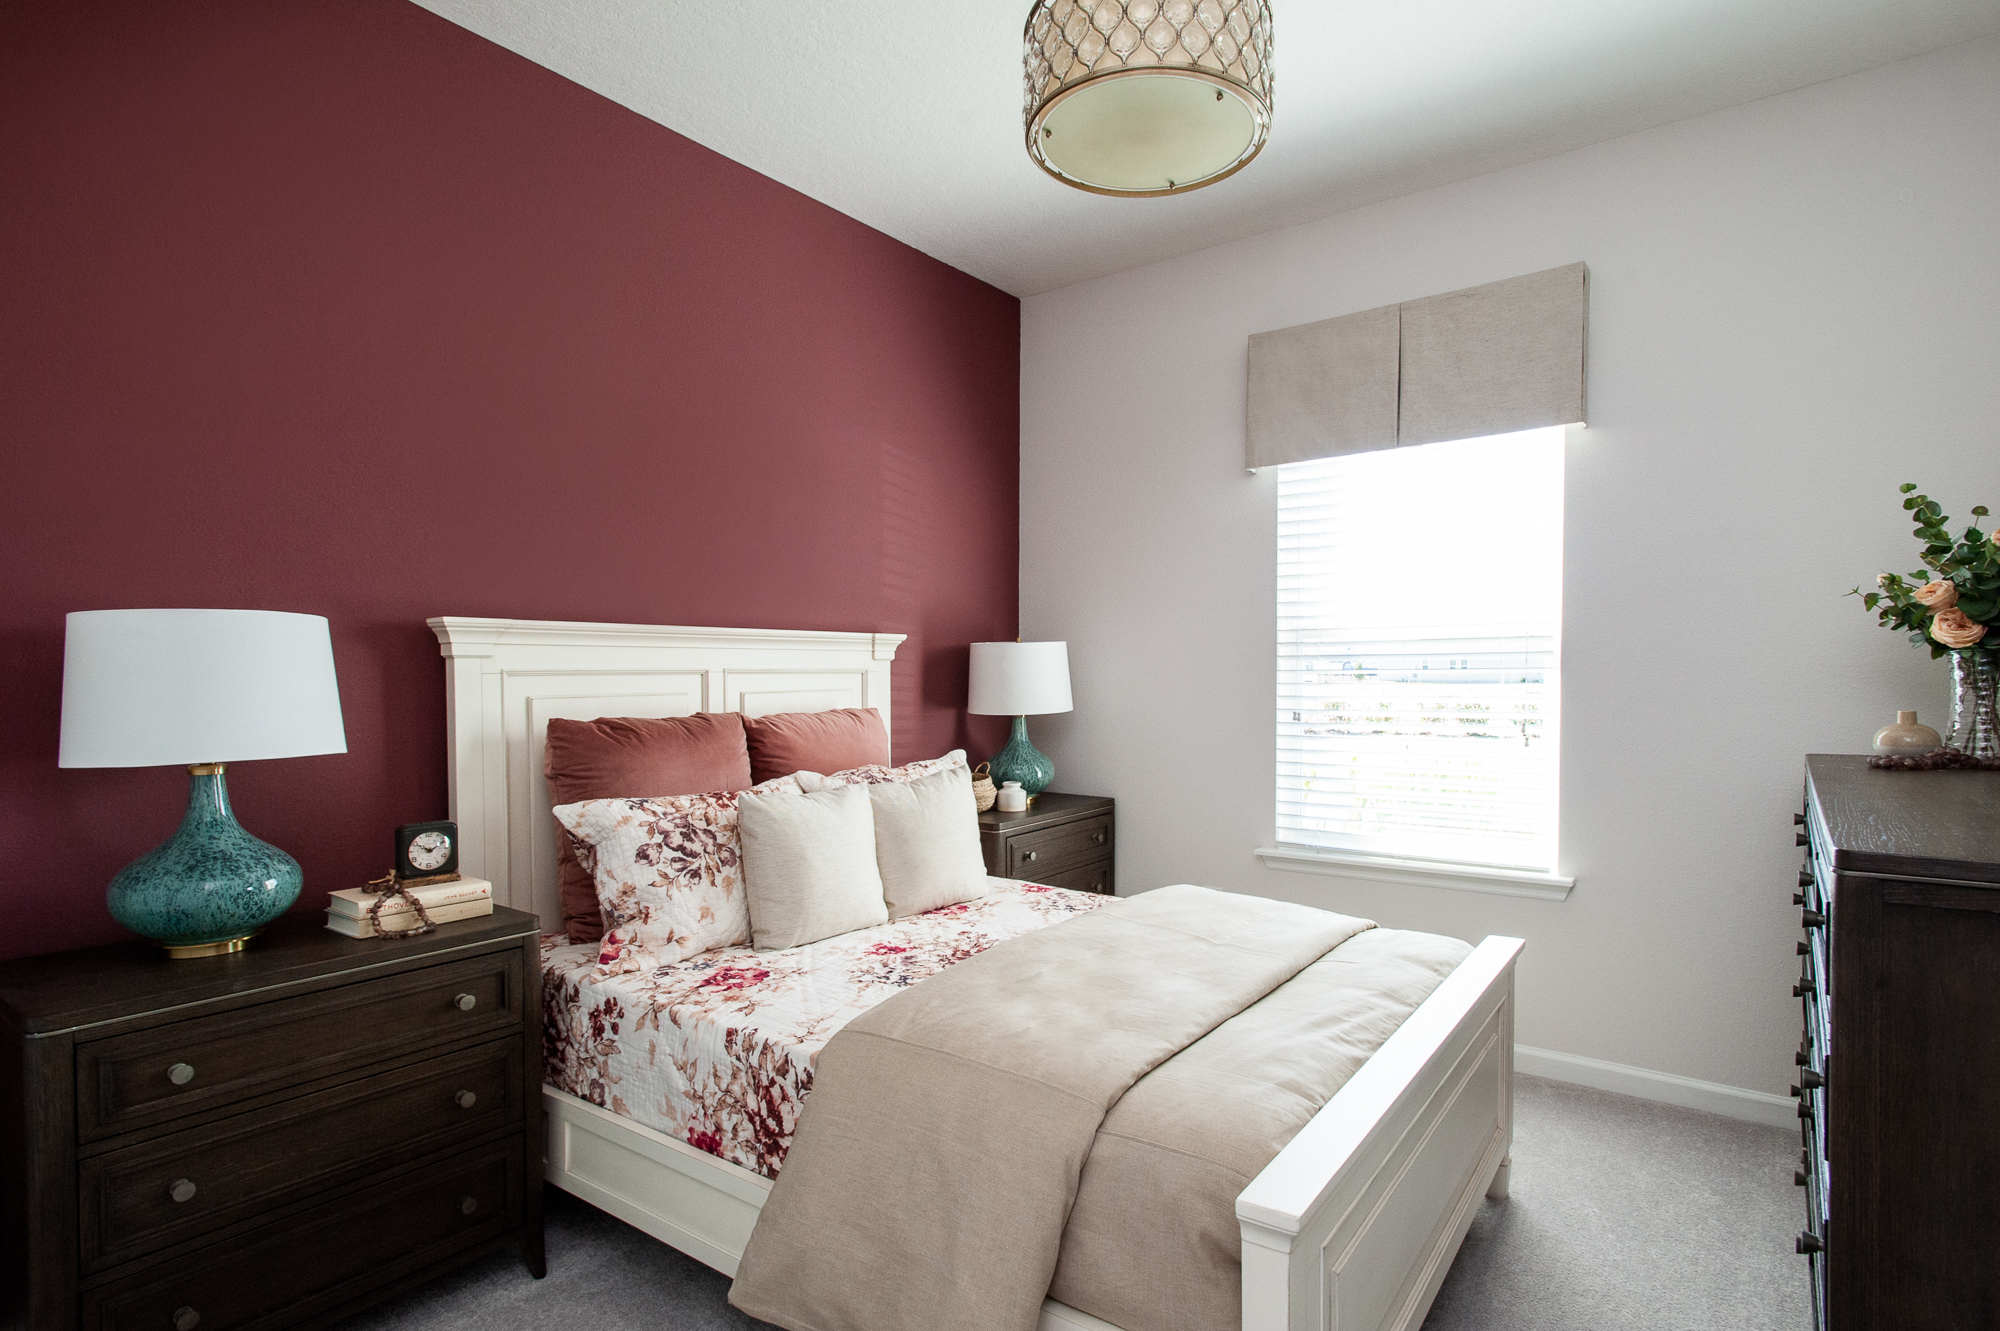 Micamy_Interior Designer_Design_Interior_Model_Merchandising_Guest Bedroom_Accent Wall_Uttemrost_UniversalFurniture_Schumacher_AmityBedding_Lennar_Blog_White Bed.jpg